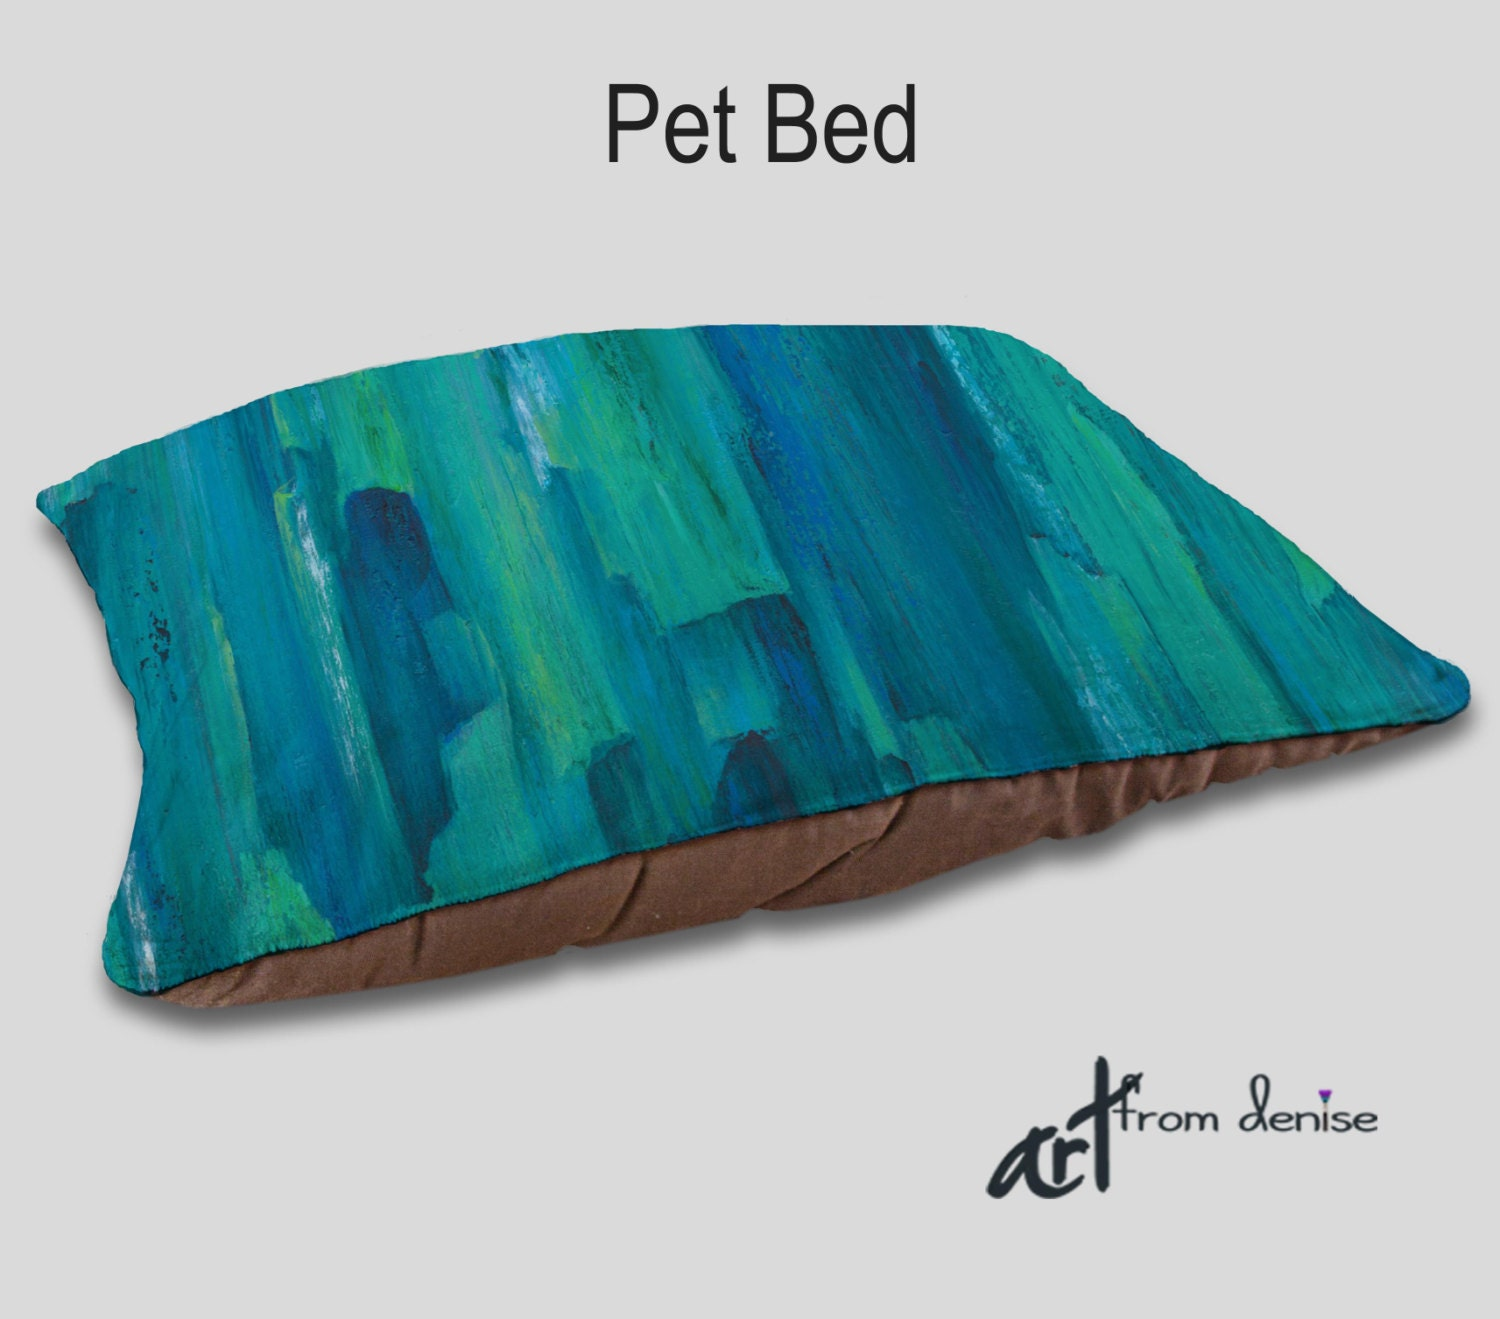 Turquoise Dog Bed 28 Images Designer Dog Bed Decorative Pet Bed Aqua Teal Turquoise Best